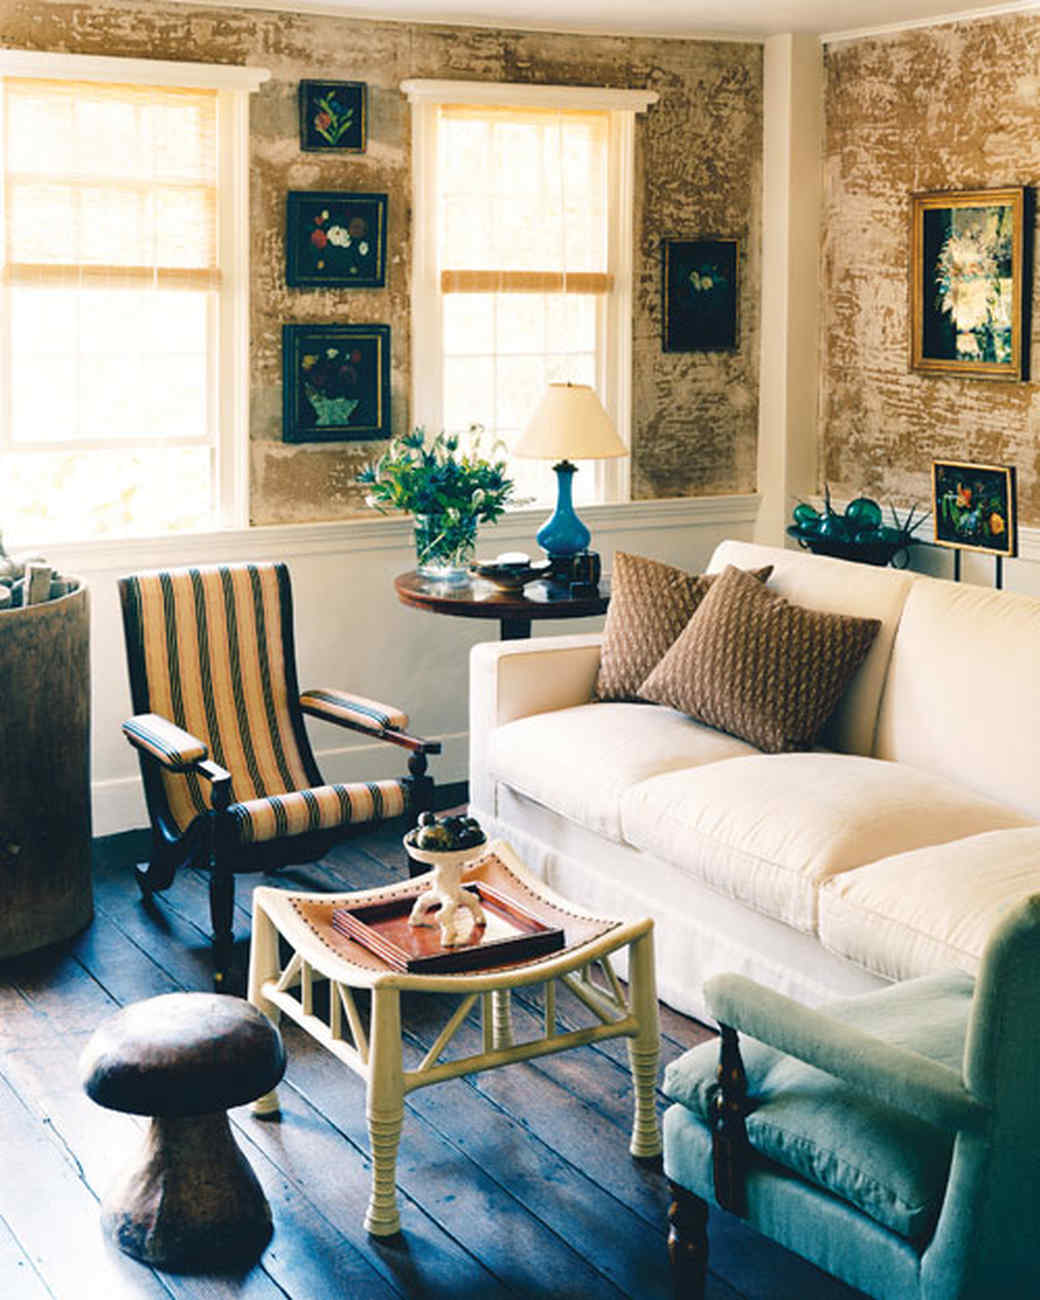 Home Tour: Country Cottage